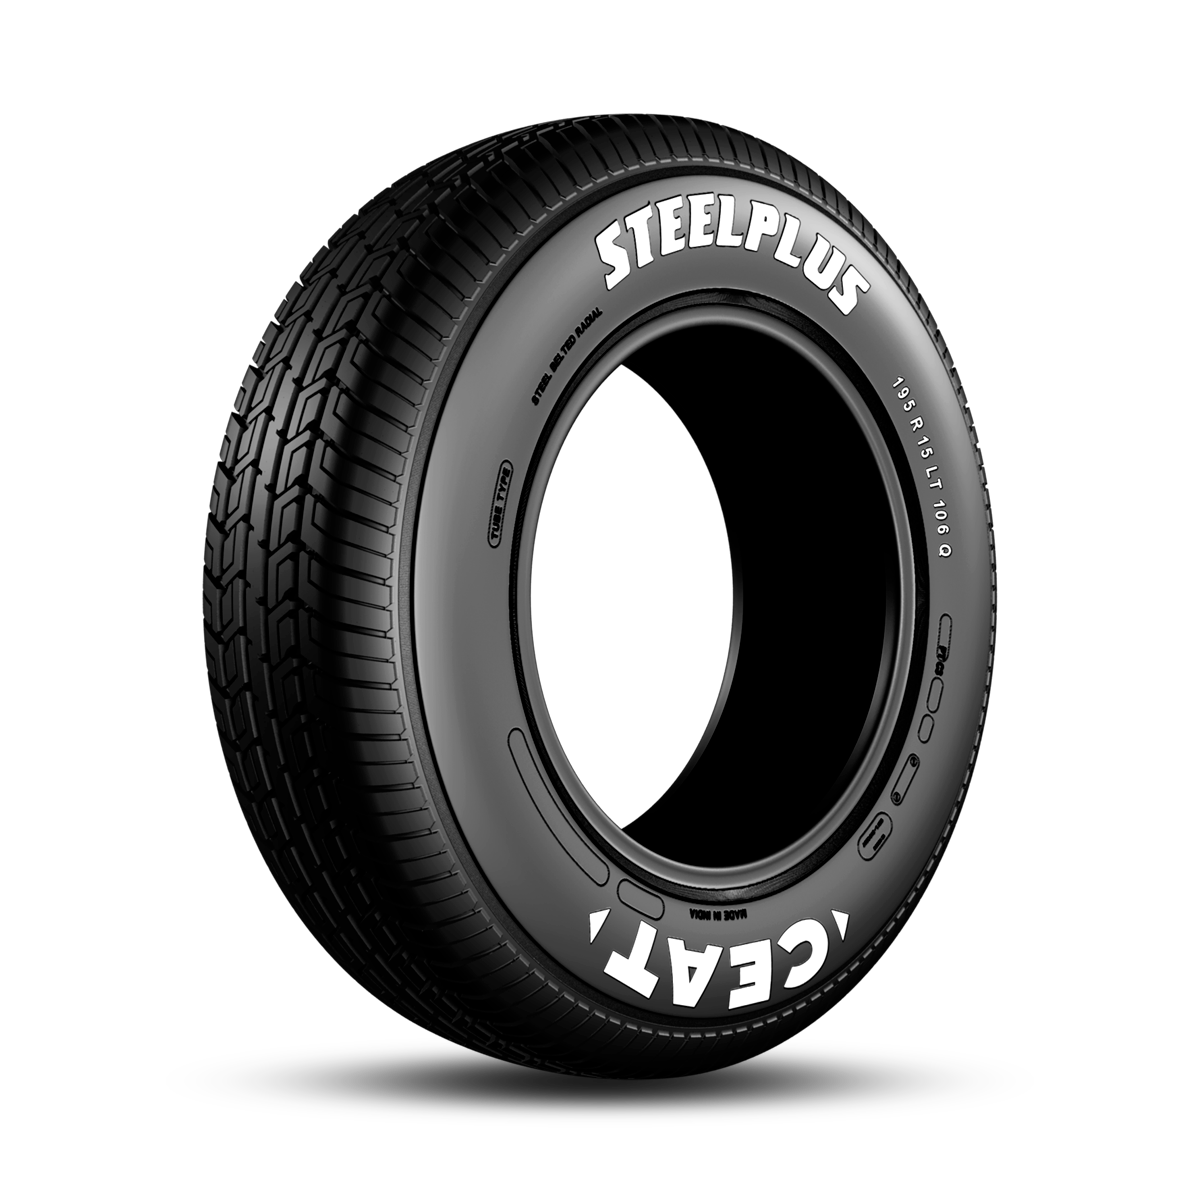 PNG Tyre - 82892